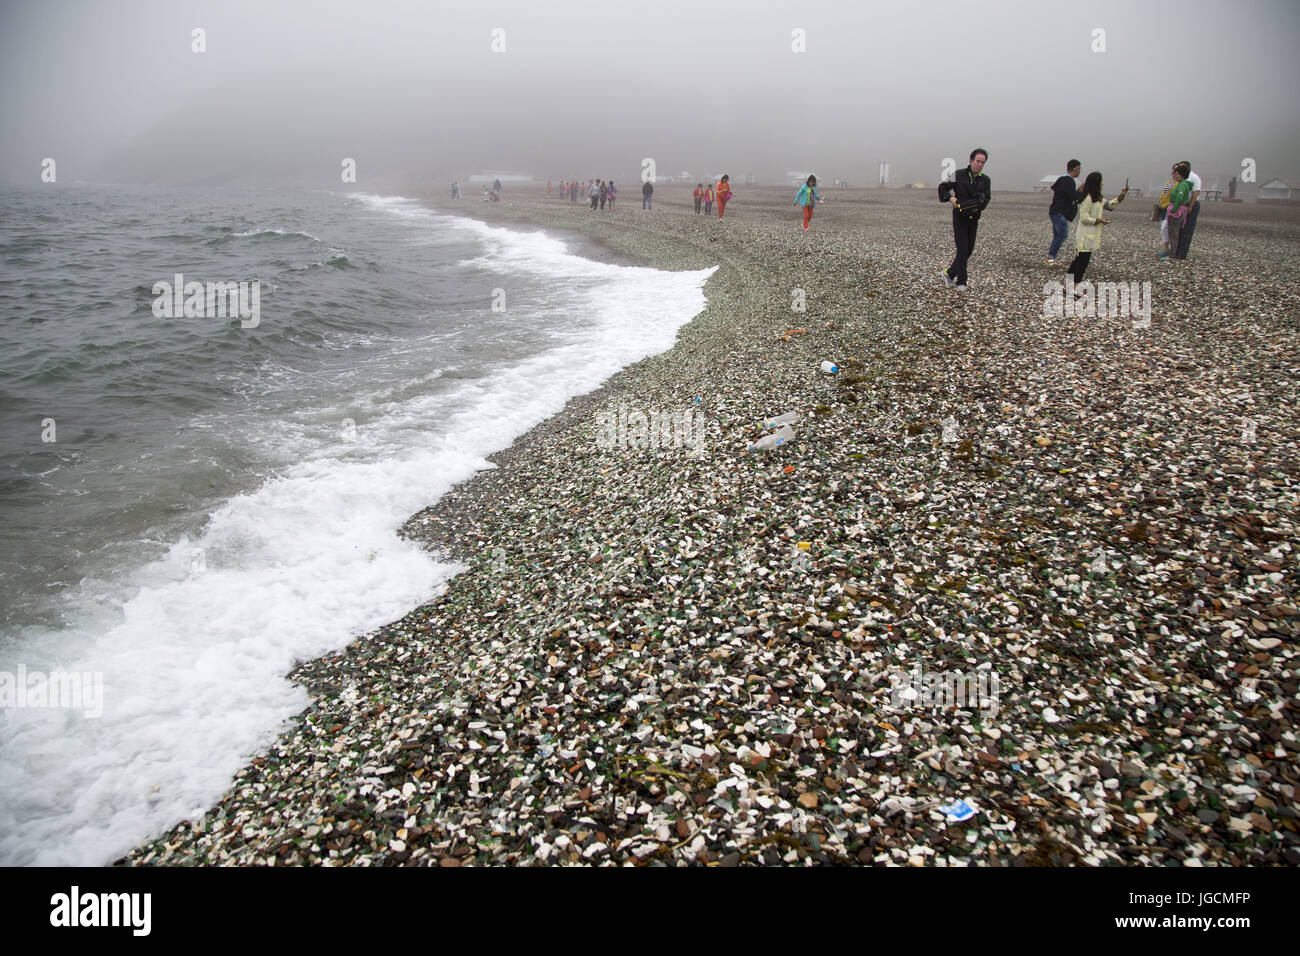 July 6, 2017 - Vladivostok, Vladivostok, China - Vladivostok, Russia -June 29 2017: (EDITORIAL USE ONLY. CHINA OUT) - Stock Image